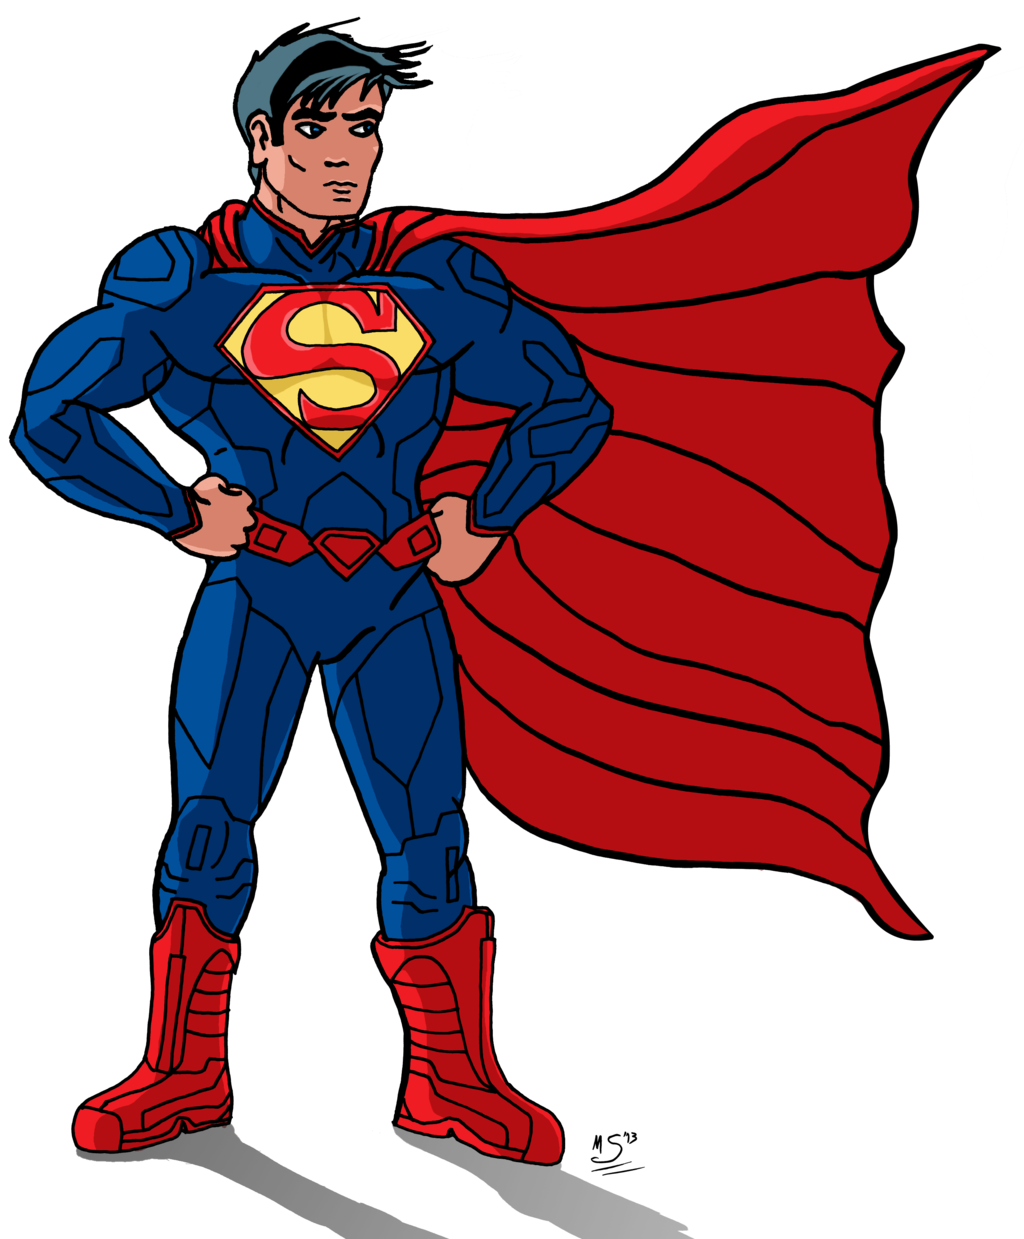 superman clip art. Justice clipart animated